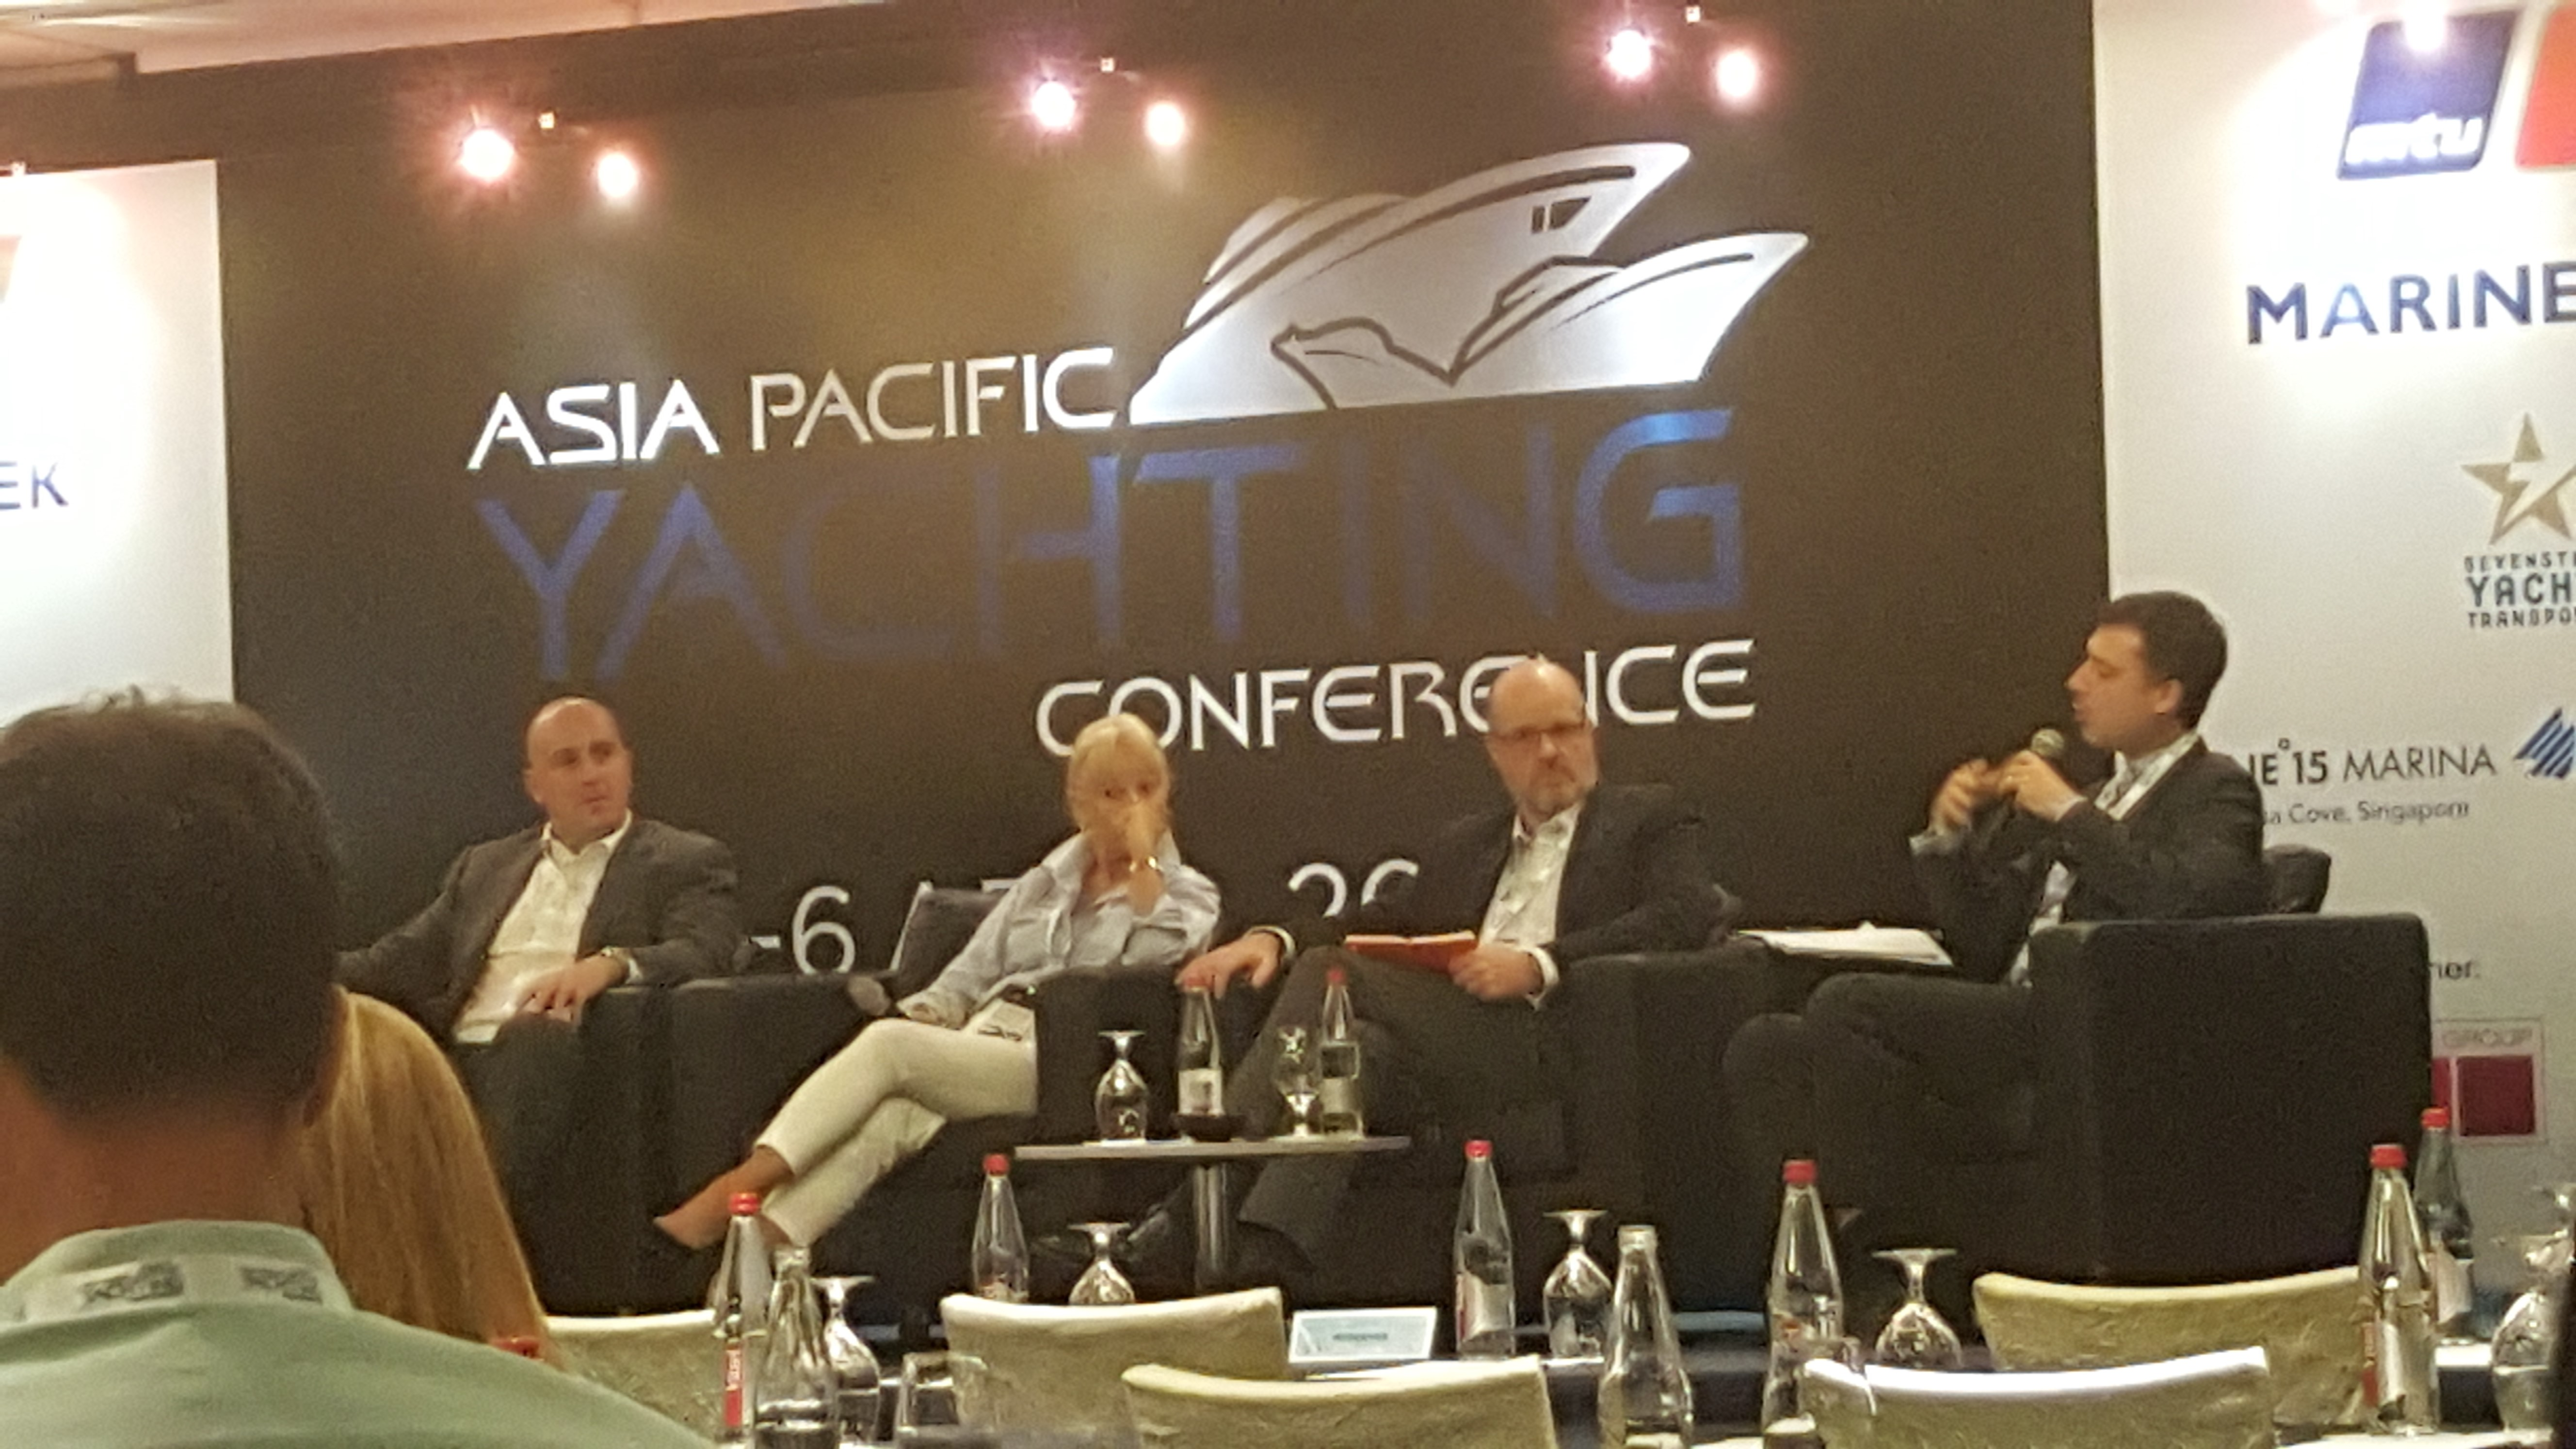 Asia Pacific Yachting conference